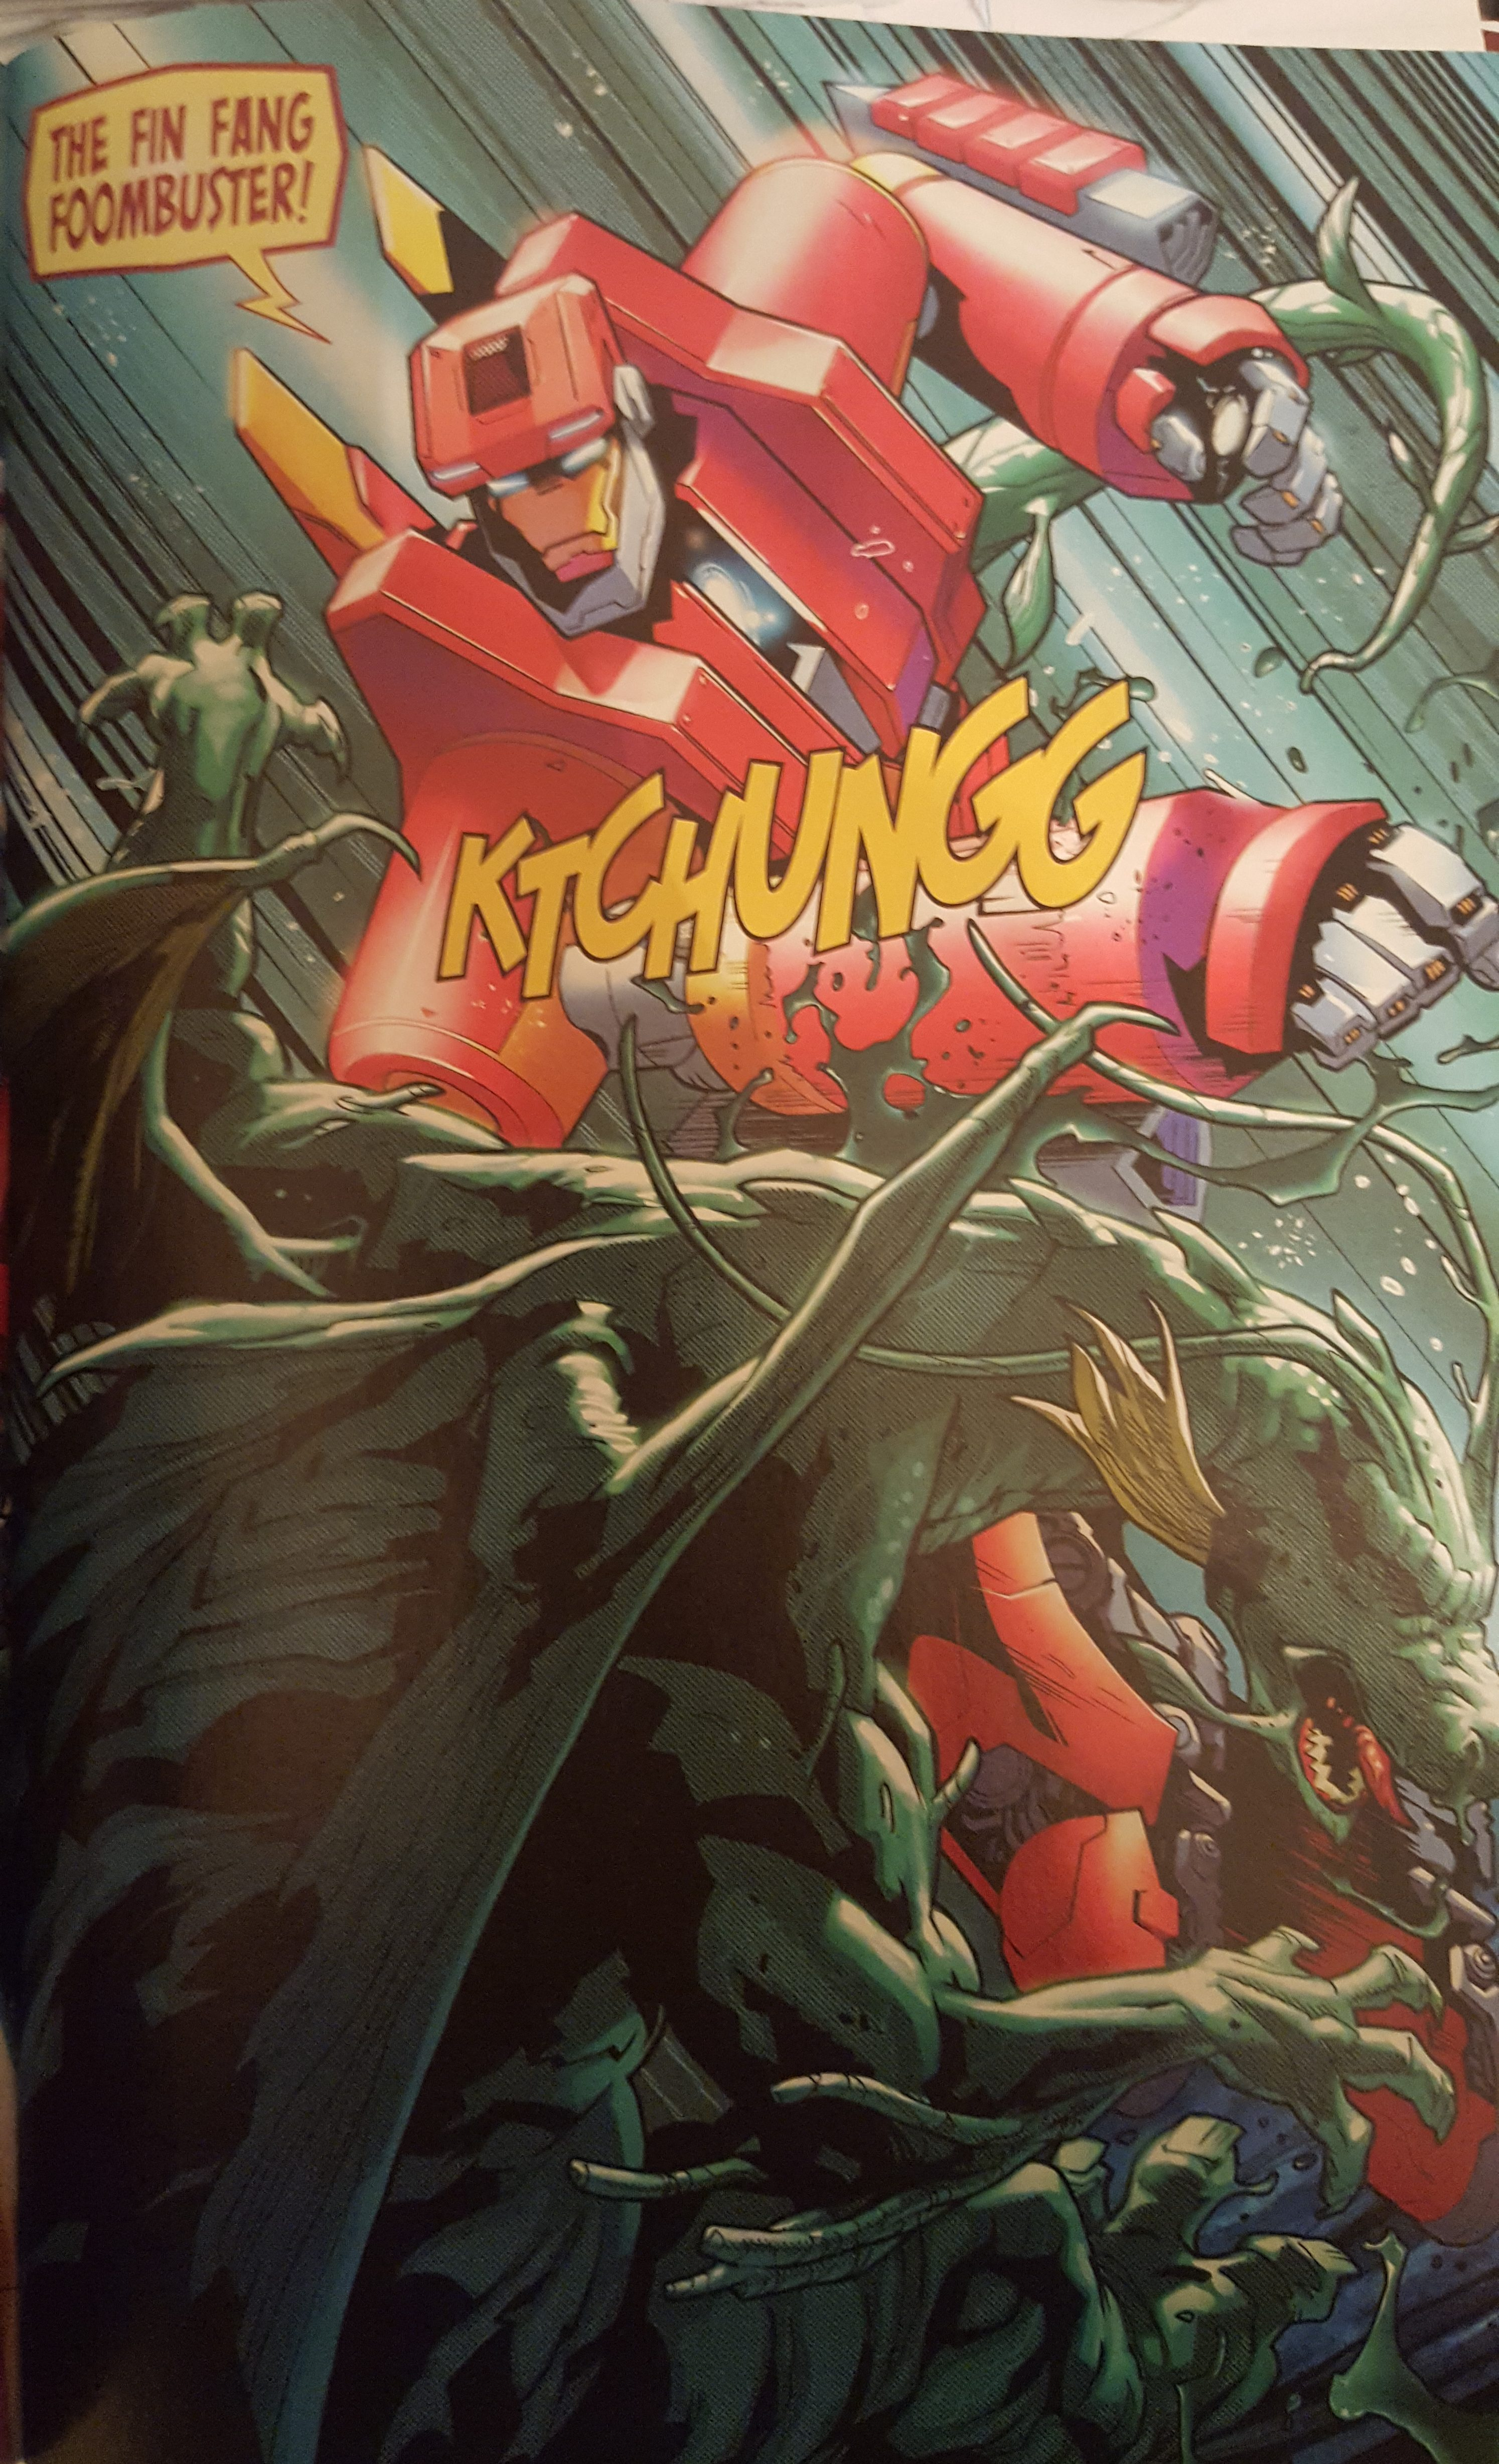 Fin Fang Foombuster